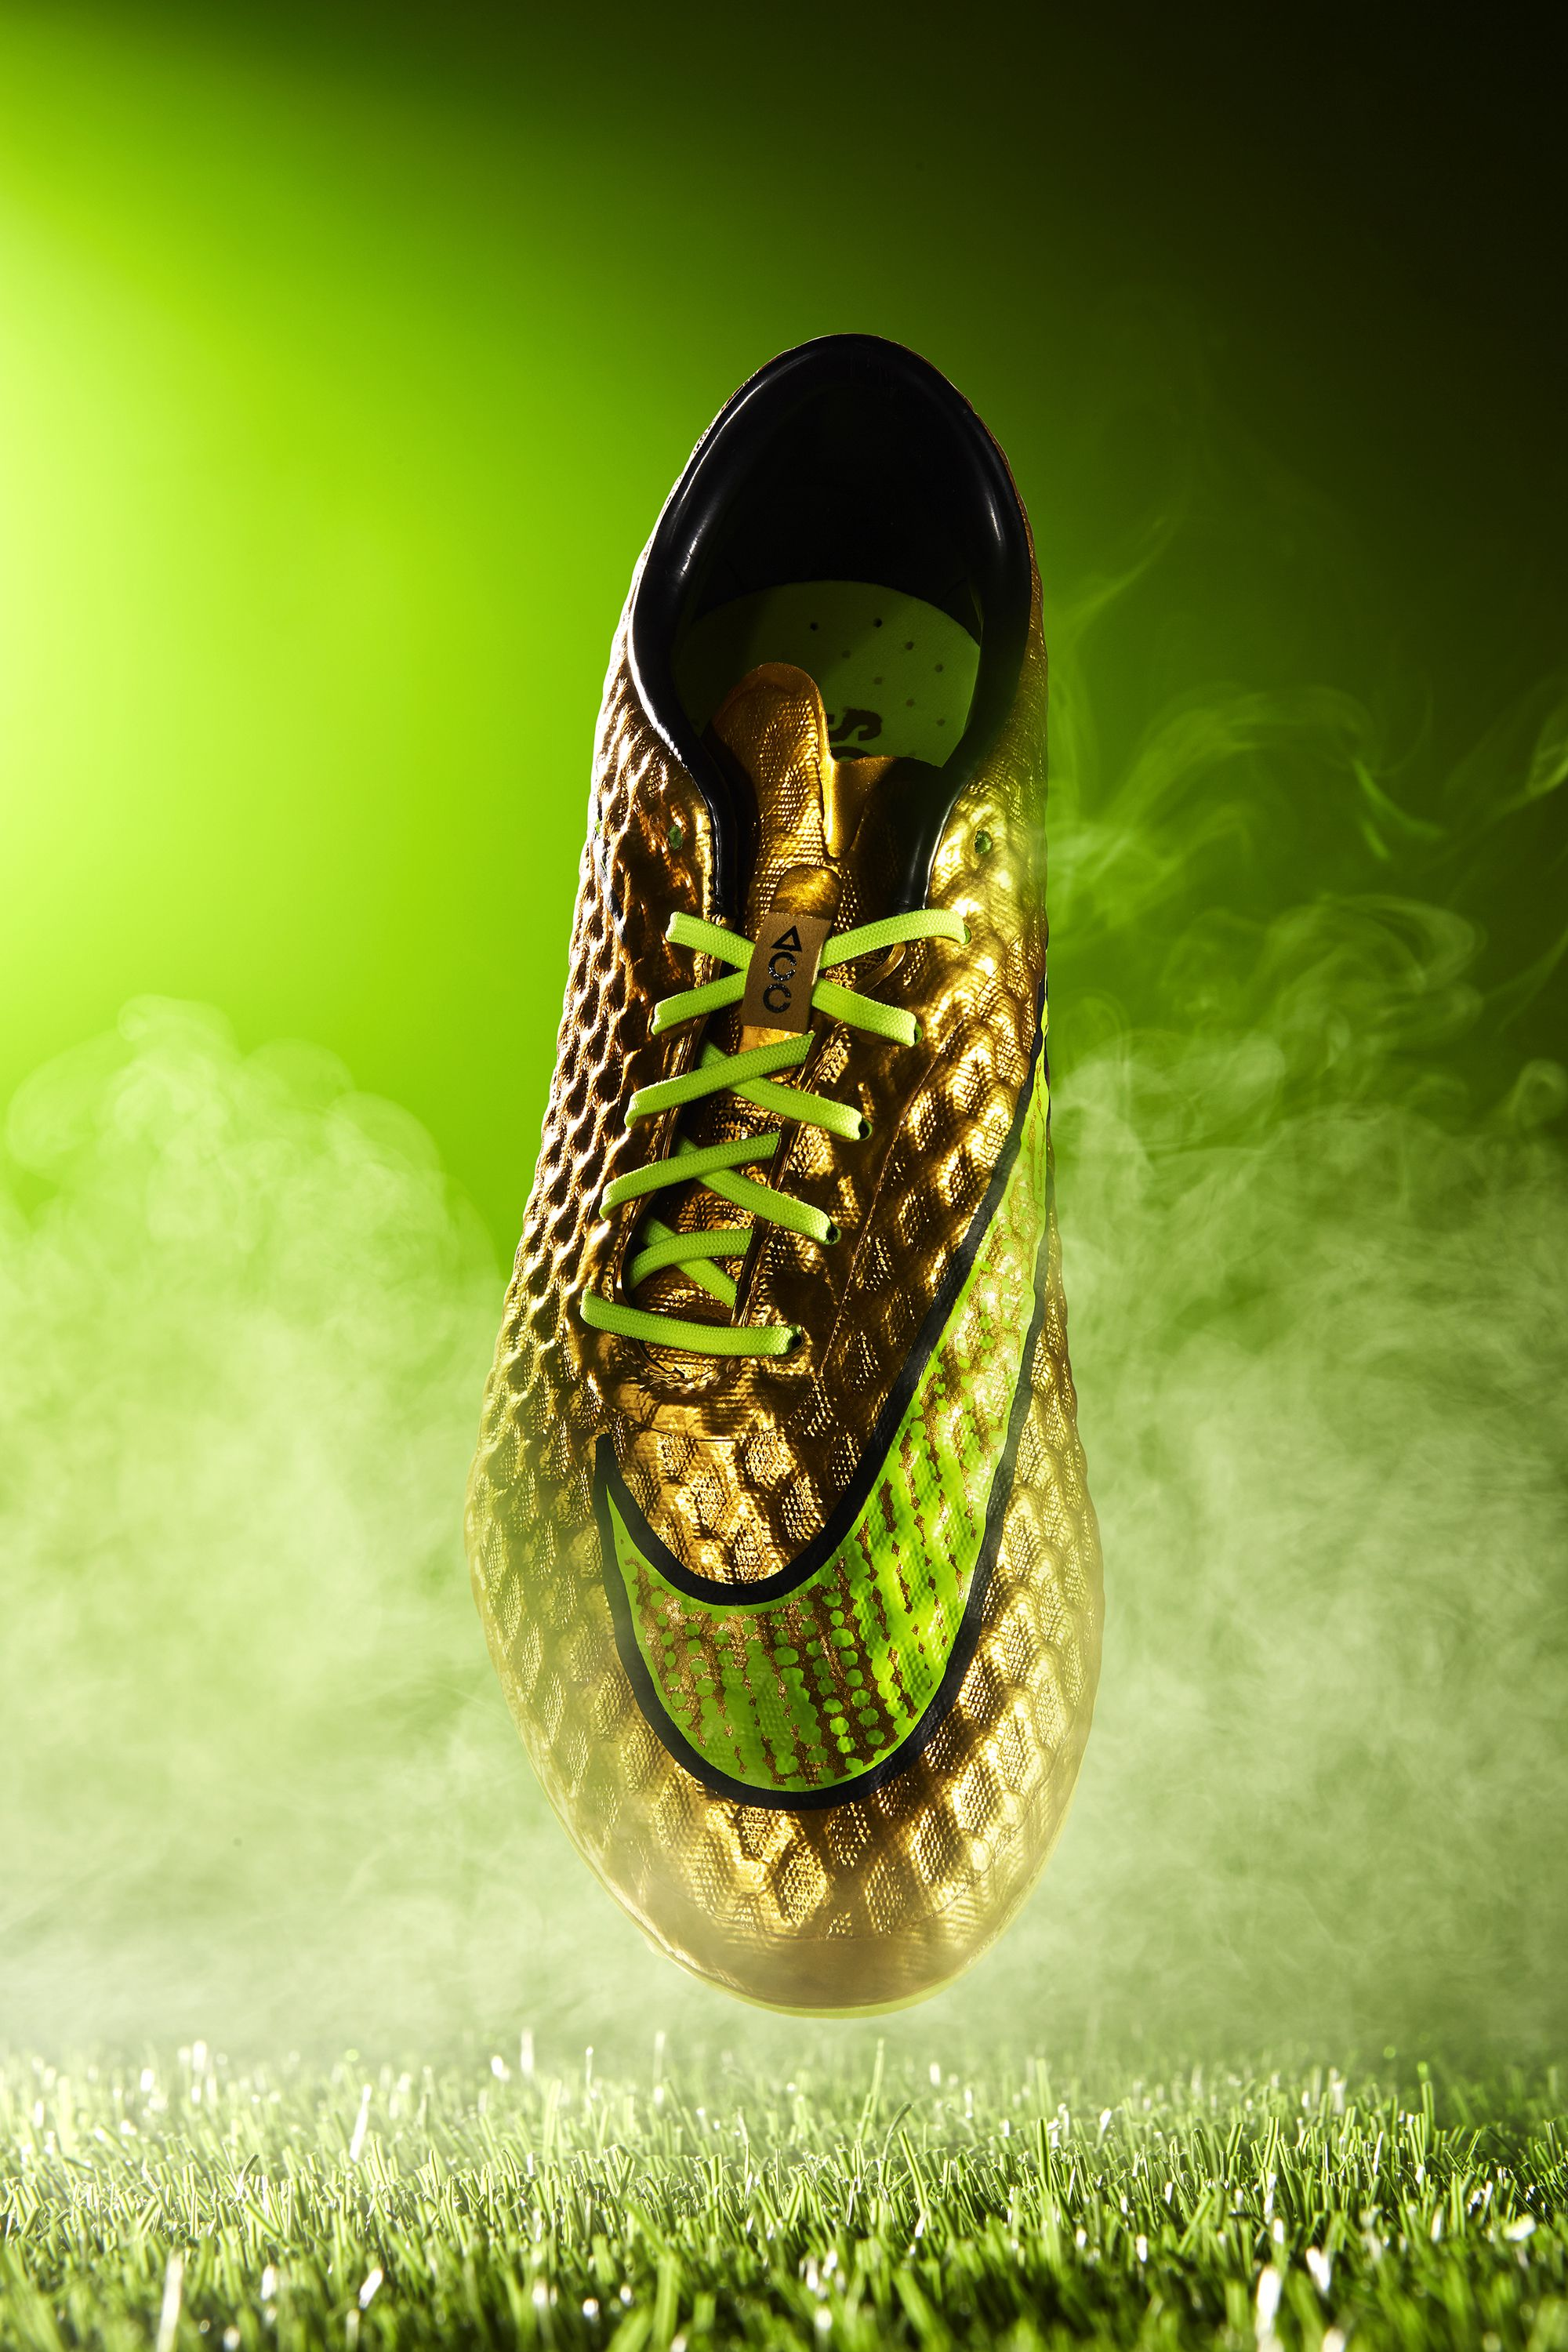 Commercial Photography Shoes Football Soccer Smoke